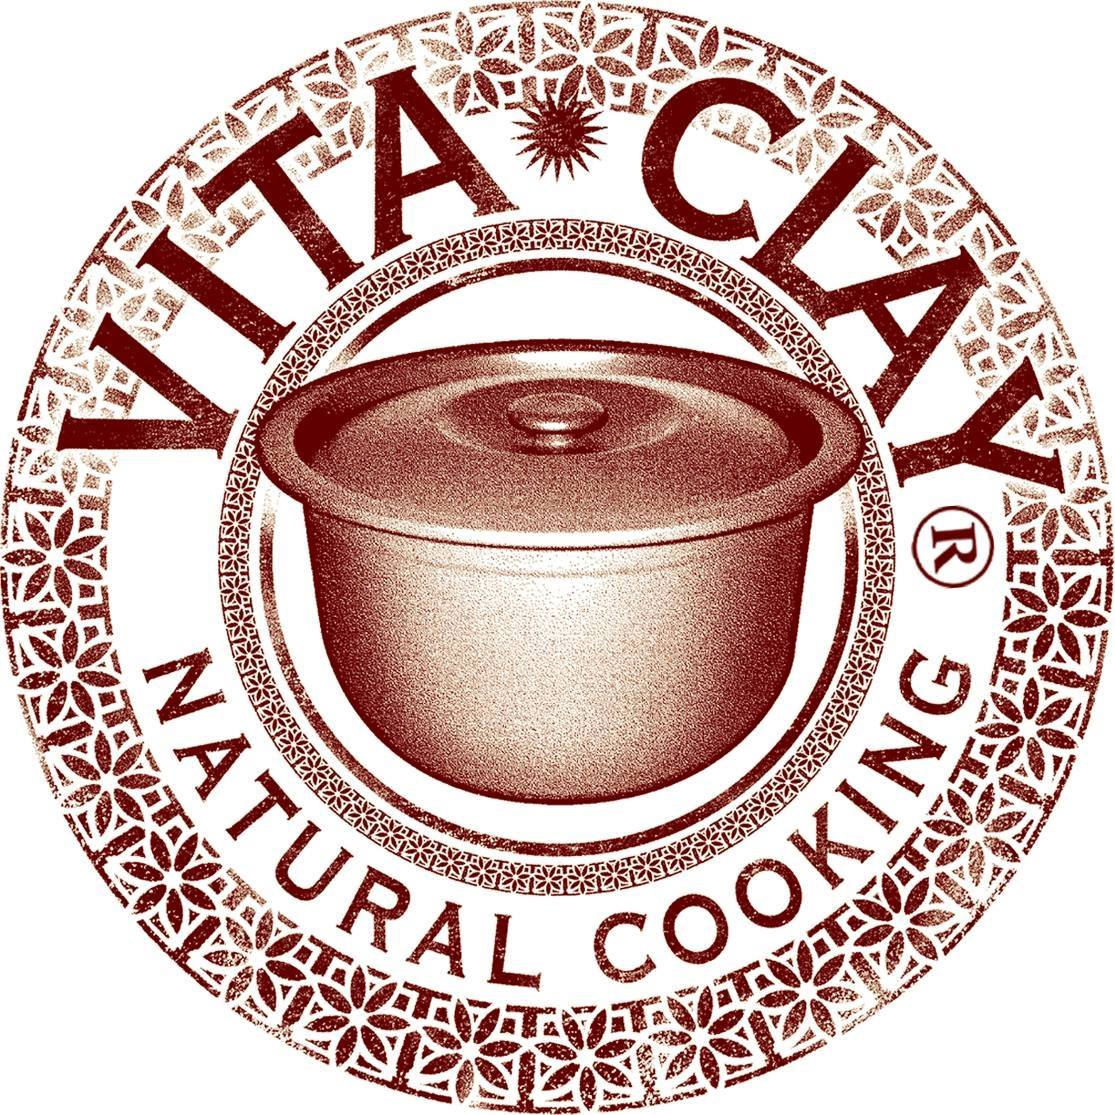 Vita Clay, Natural Cooking, Clay slow cooker, food, cooking, nontoxic